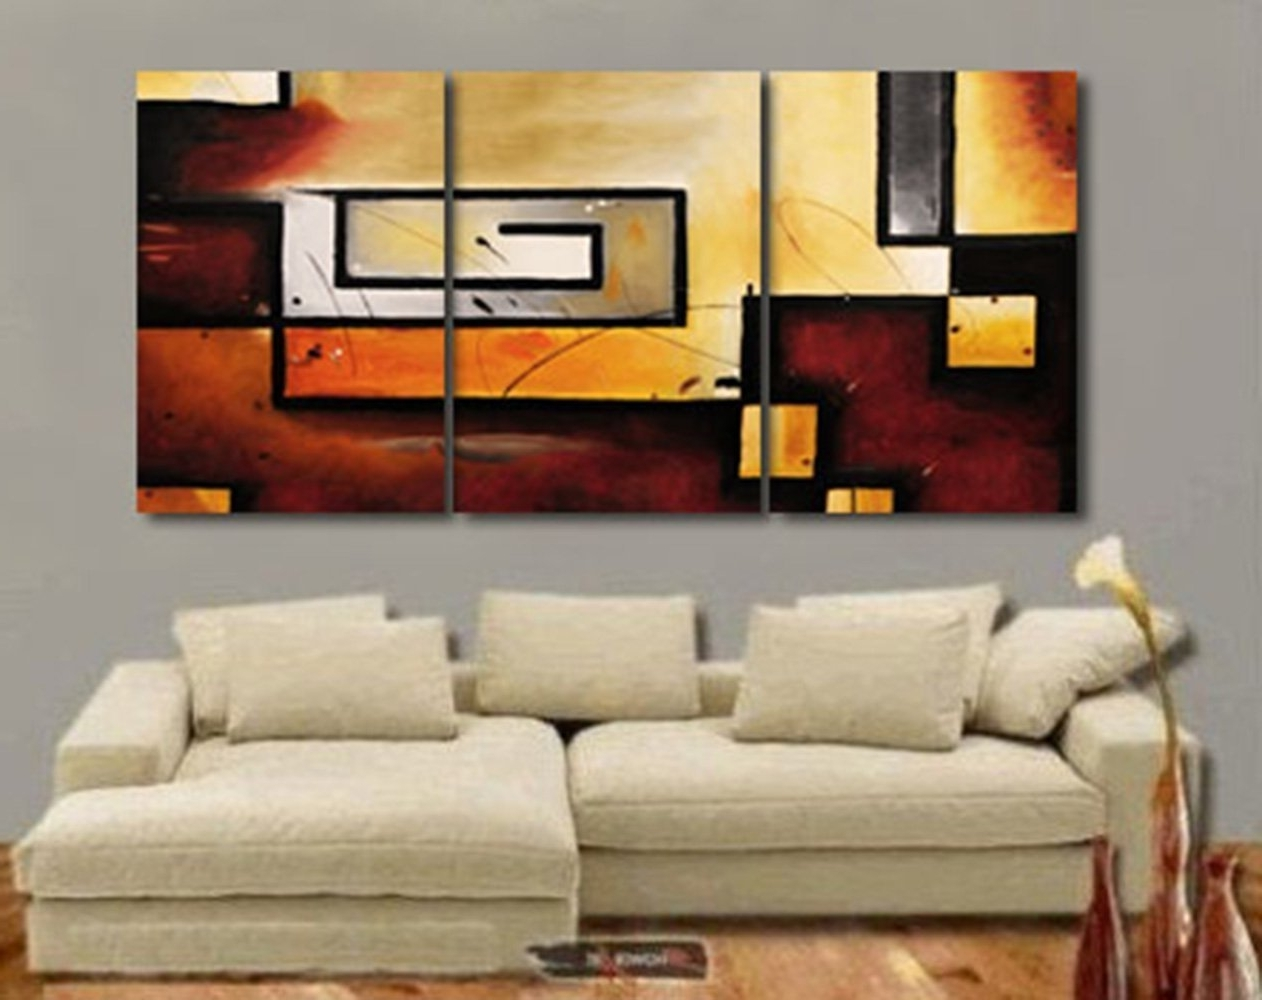 Abstract Wall Art For Dining Room Inside Most Current Amazon: Art Wall Abstract Modern Gallery Wrapped Canvas Art (View 13 of 15)